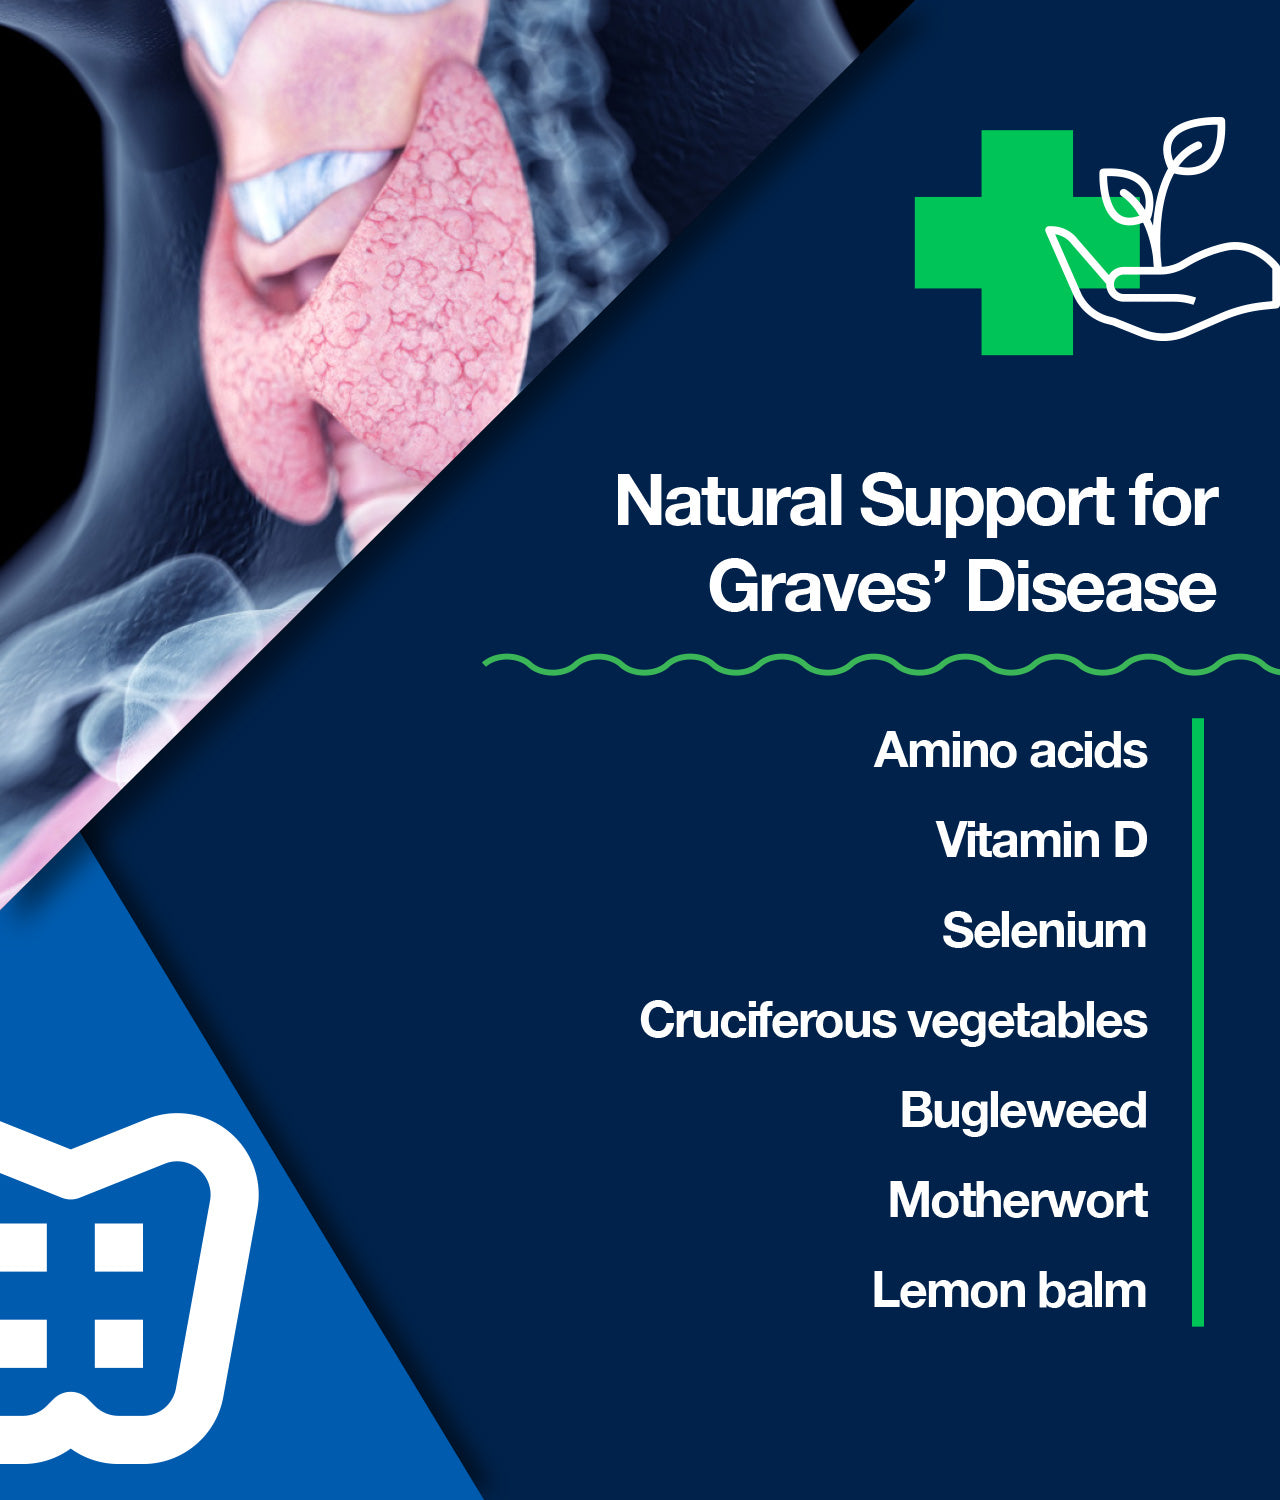 Natural Support for Graves' Disease